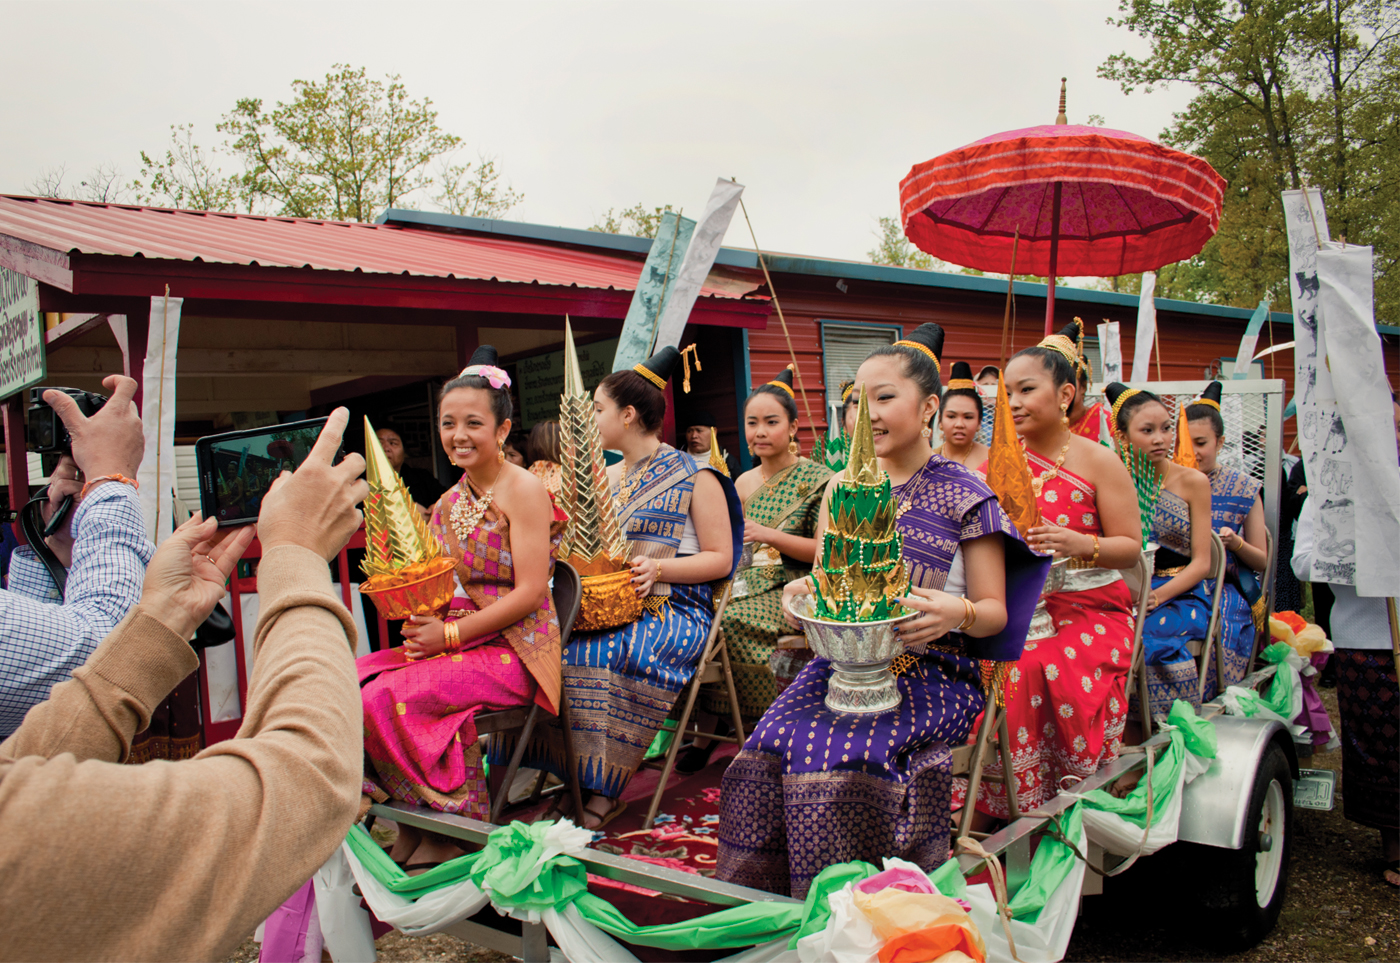 7-New-Years-Princesses-on-Parade-by-Katy-Clune.jpg